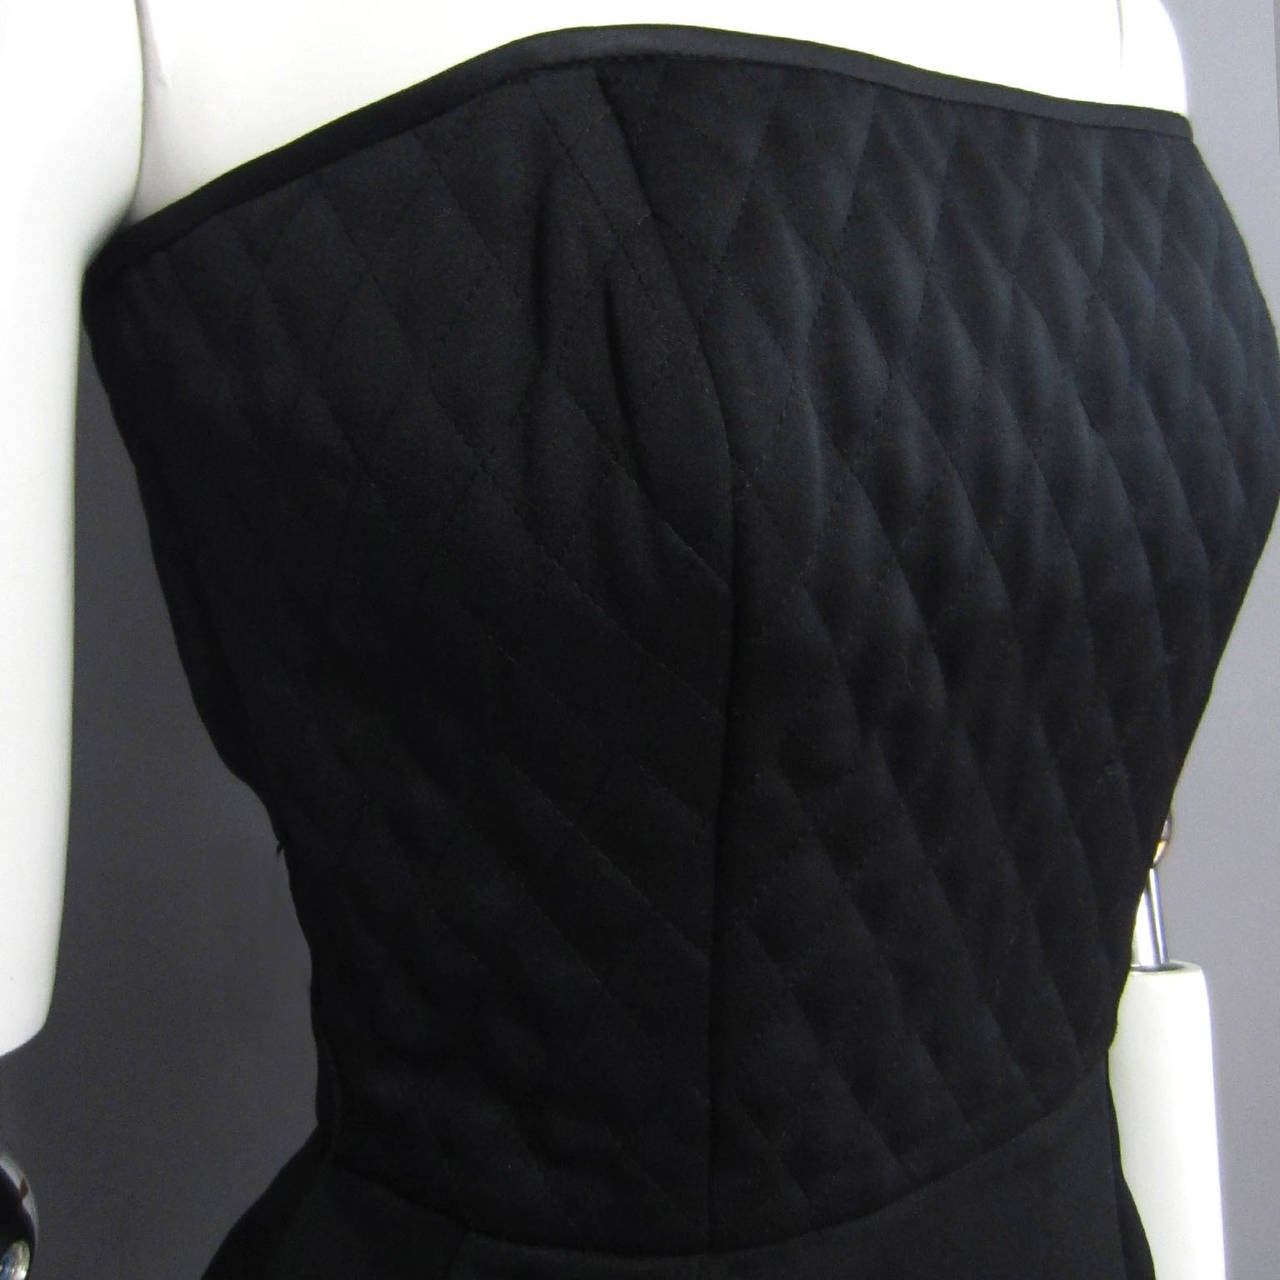 The perfect little black dress. This VICTOR COSTA features a quilted bodice. The top is trimmed in black silk. The simple skirt further accents the quilted detail. Simple and chic. Label Present. Excellent Condition.